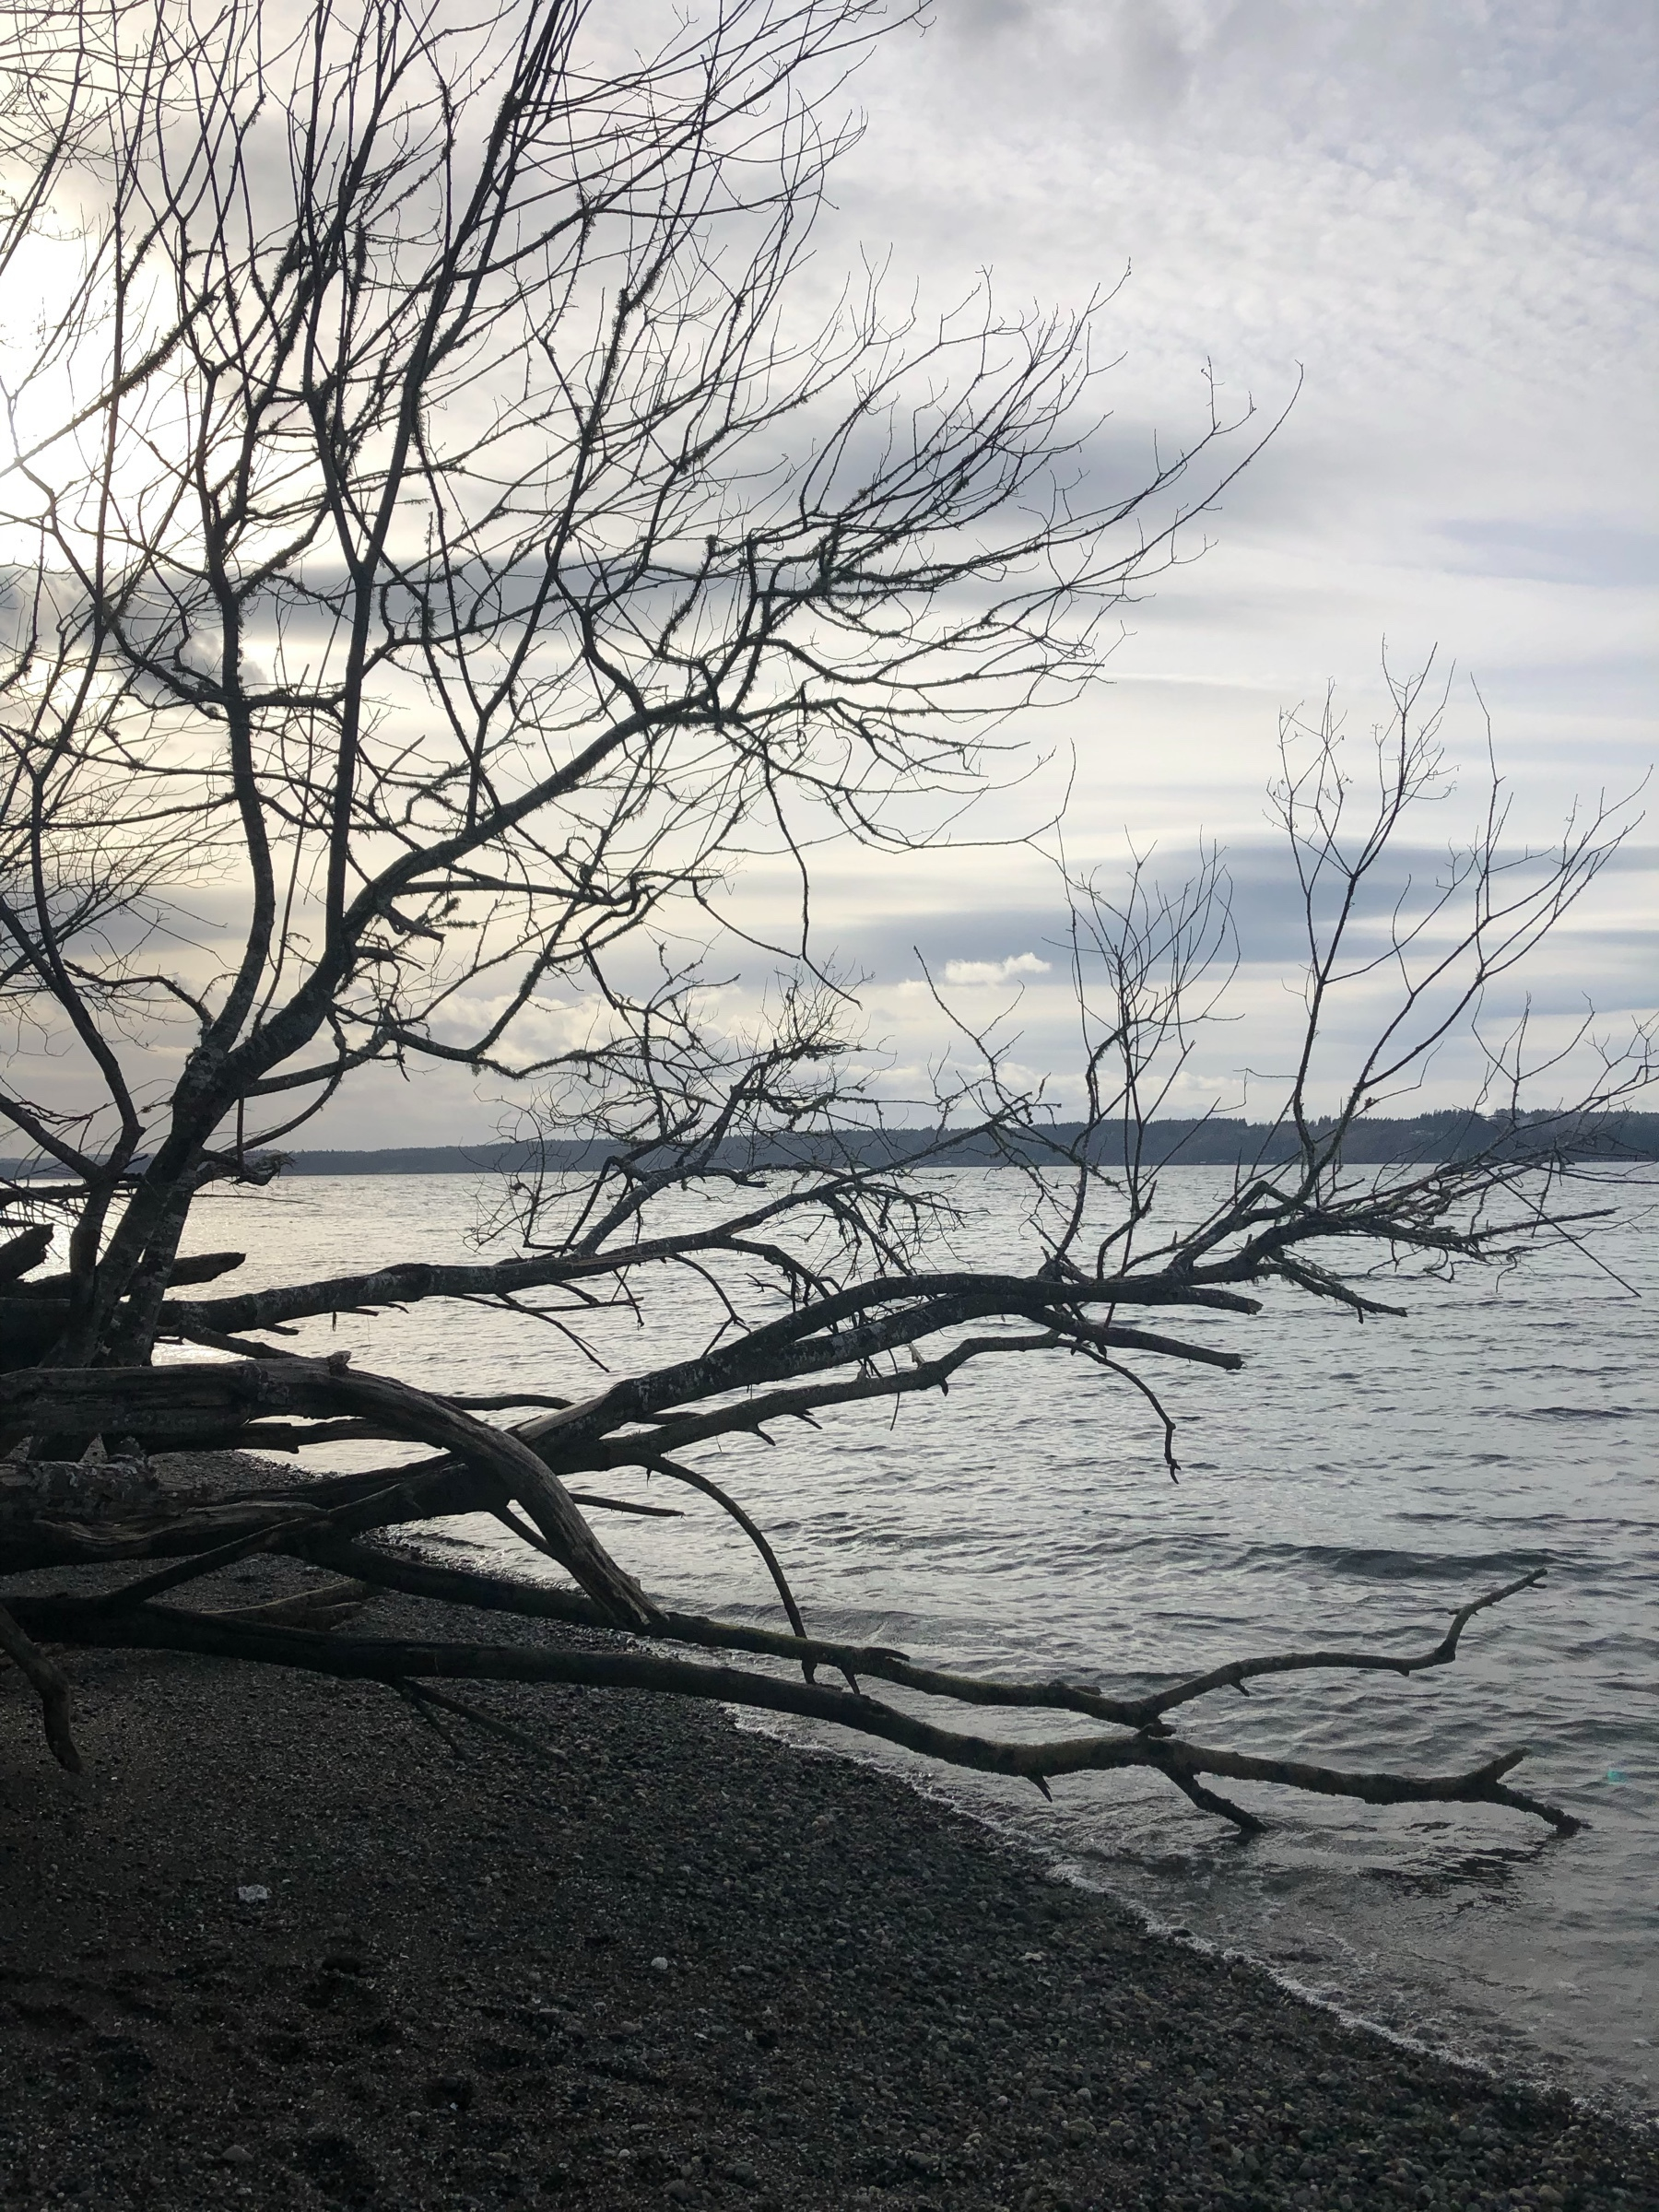 Beautiful driftwood branches hang low over a rocky beach